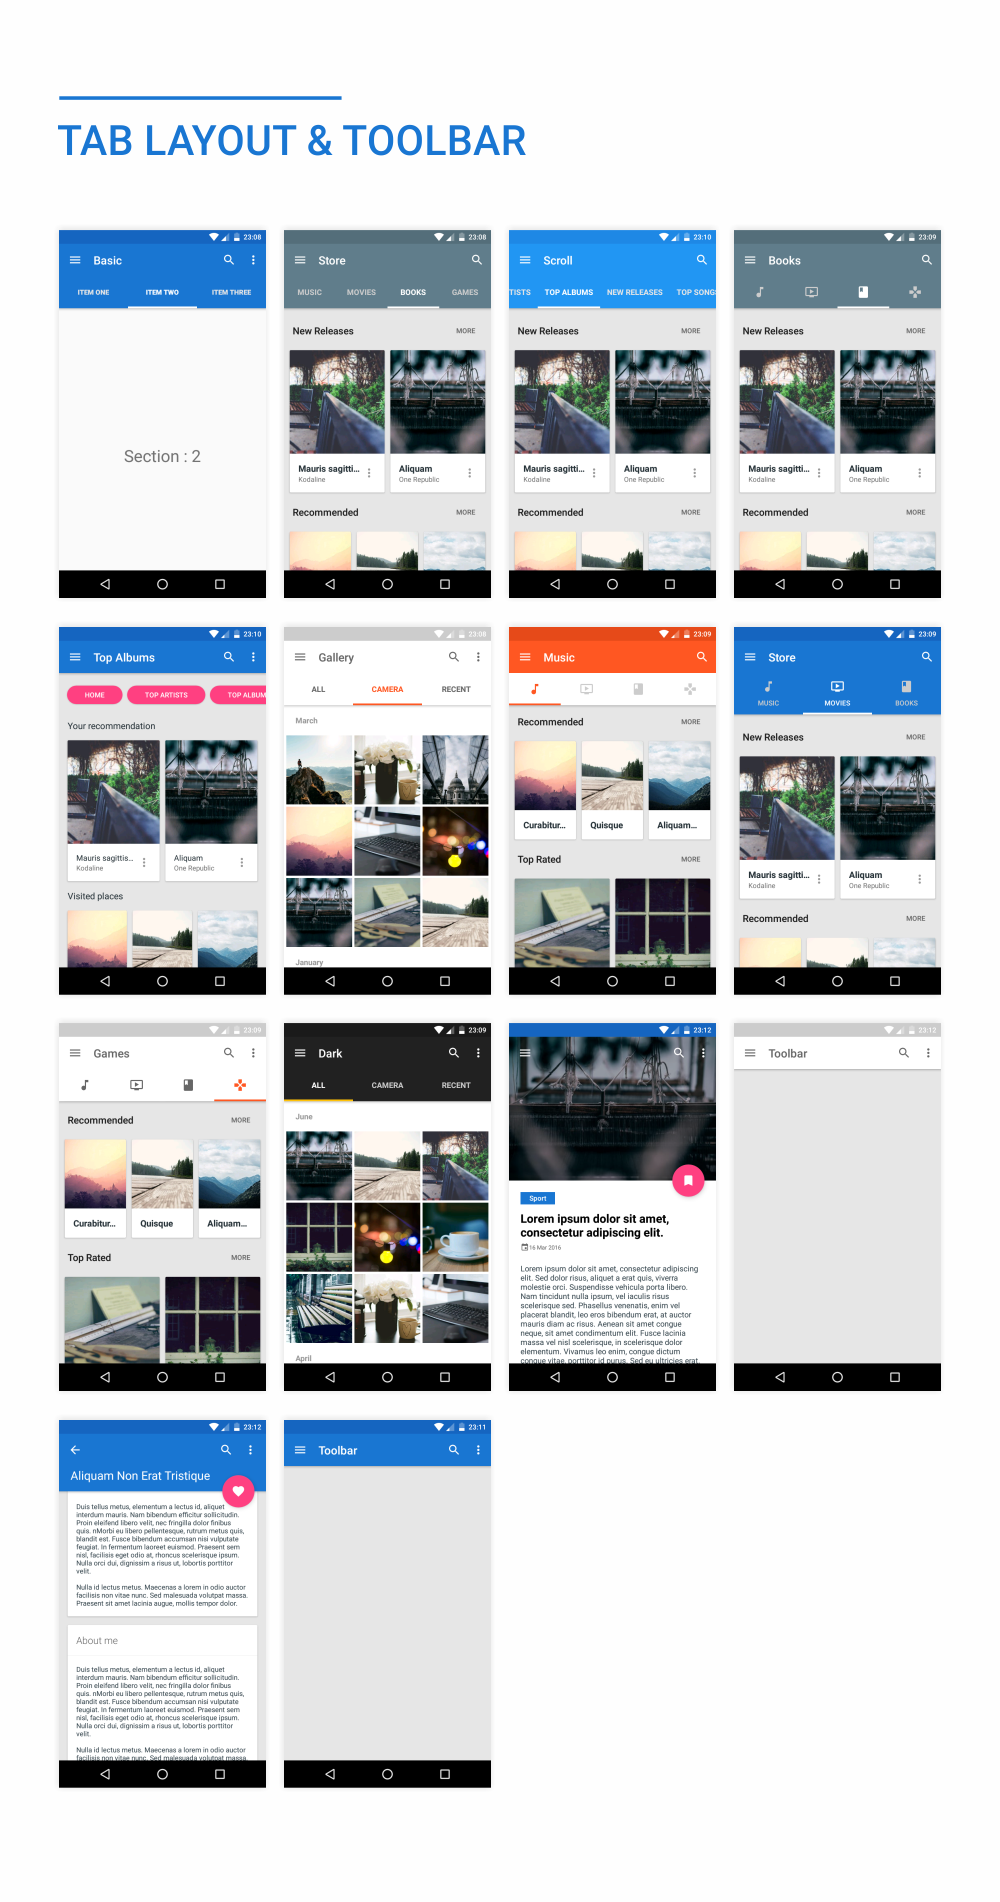 MaterialX - Android Material Design UI Components 2.5 - 40